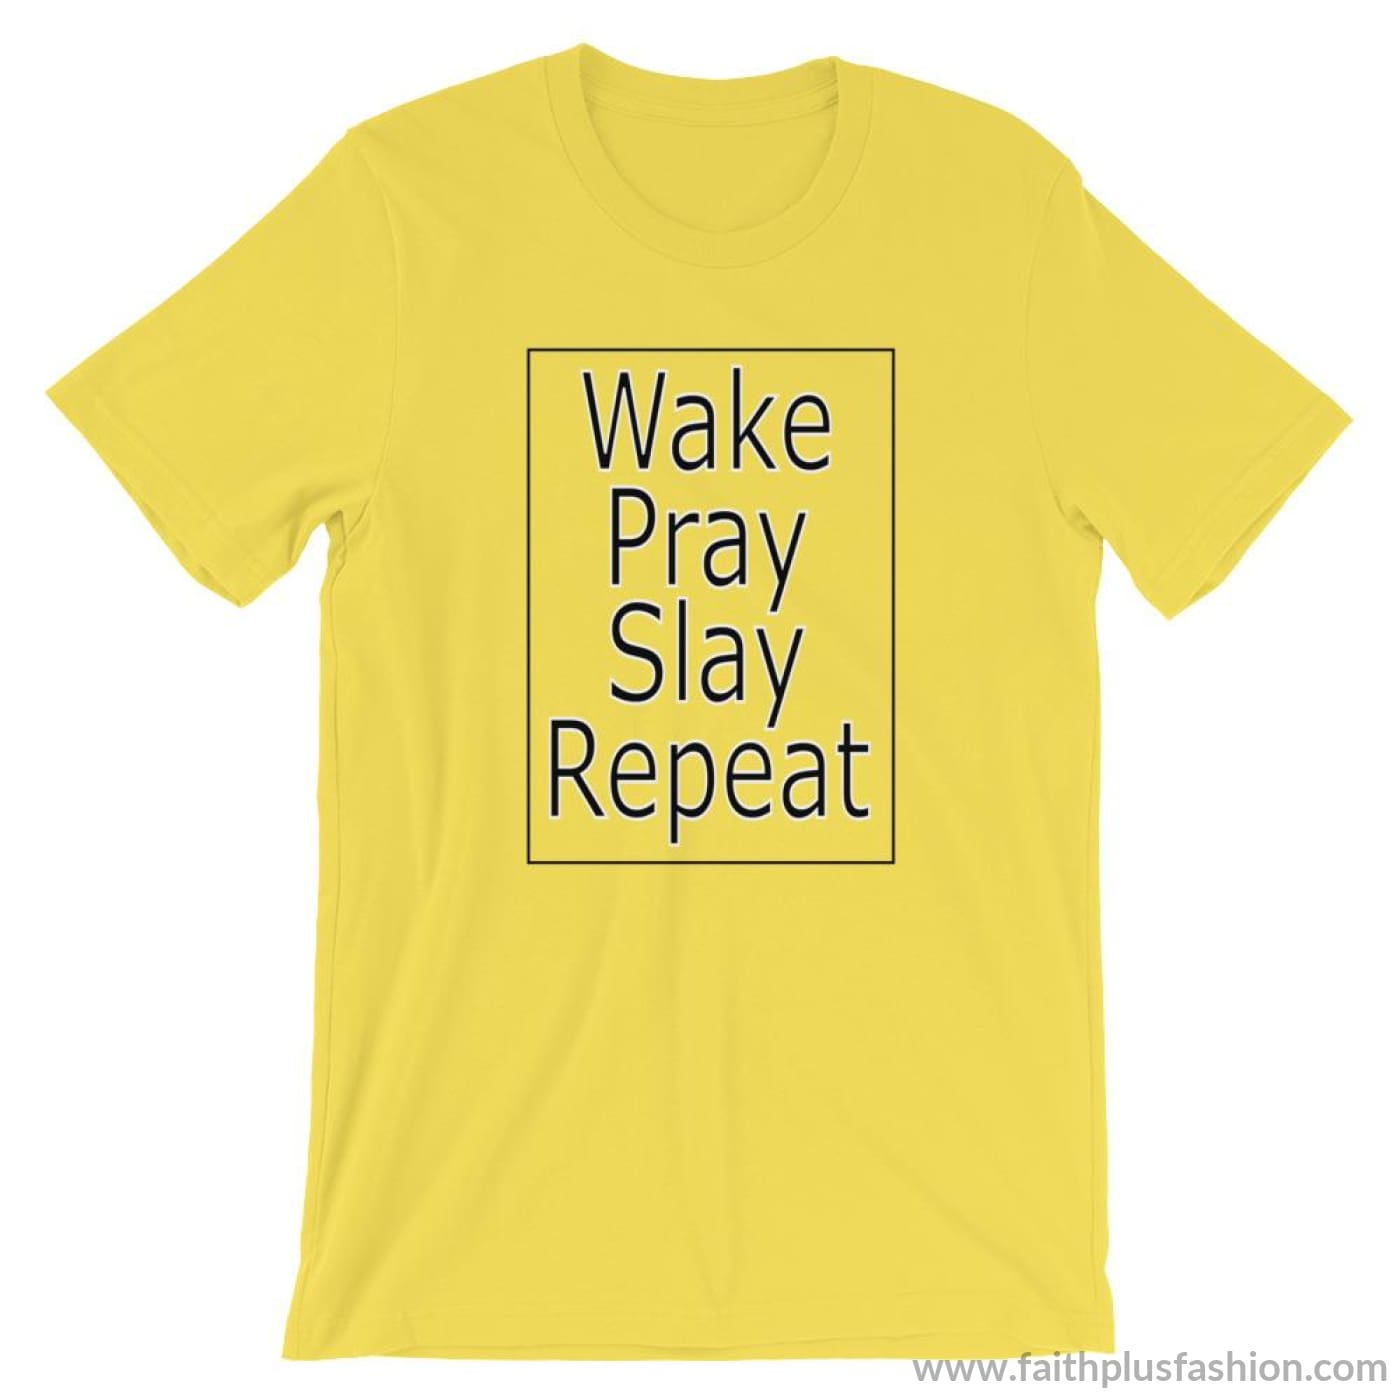 Wake Pray Slay Repeat Unisex T-Shirt - Yellow / S